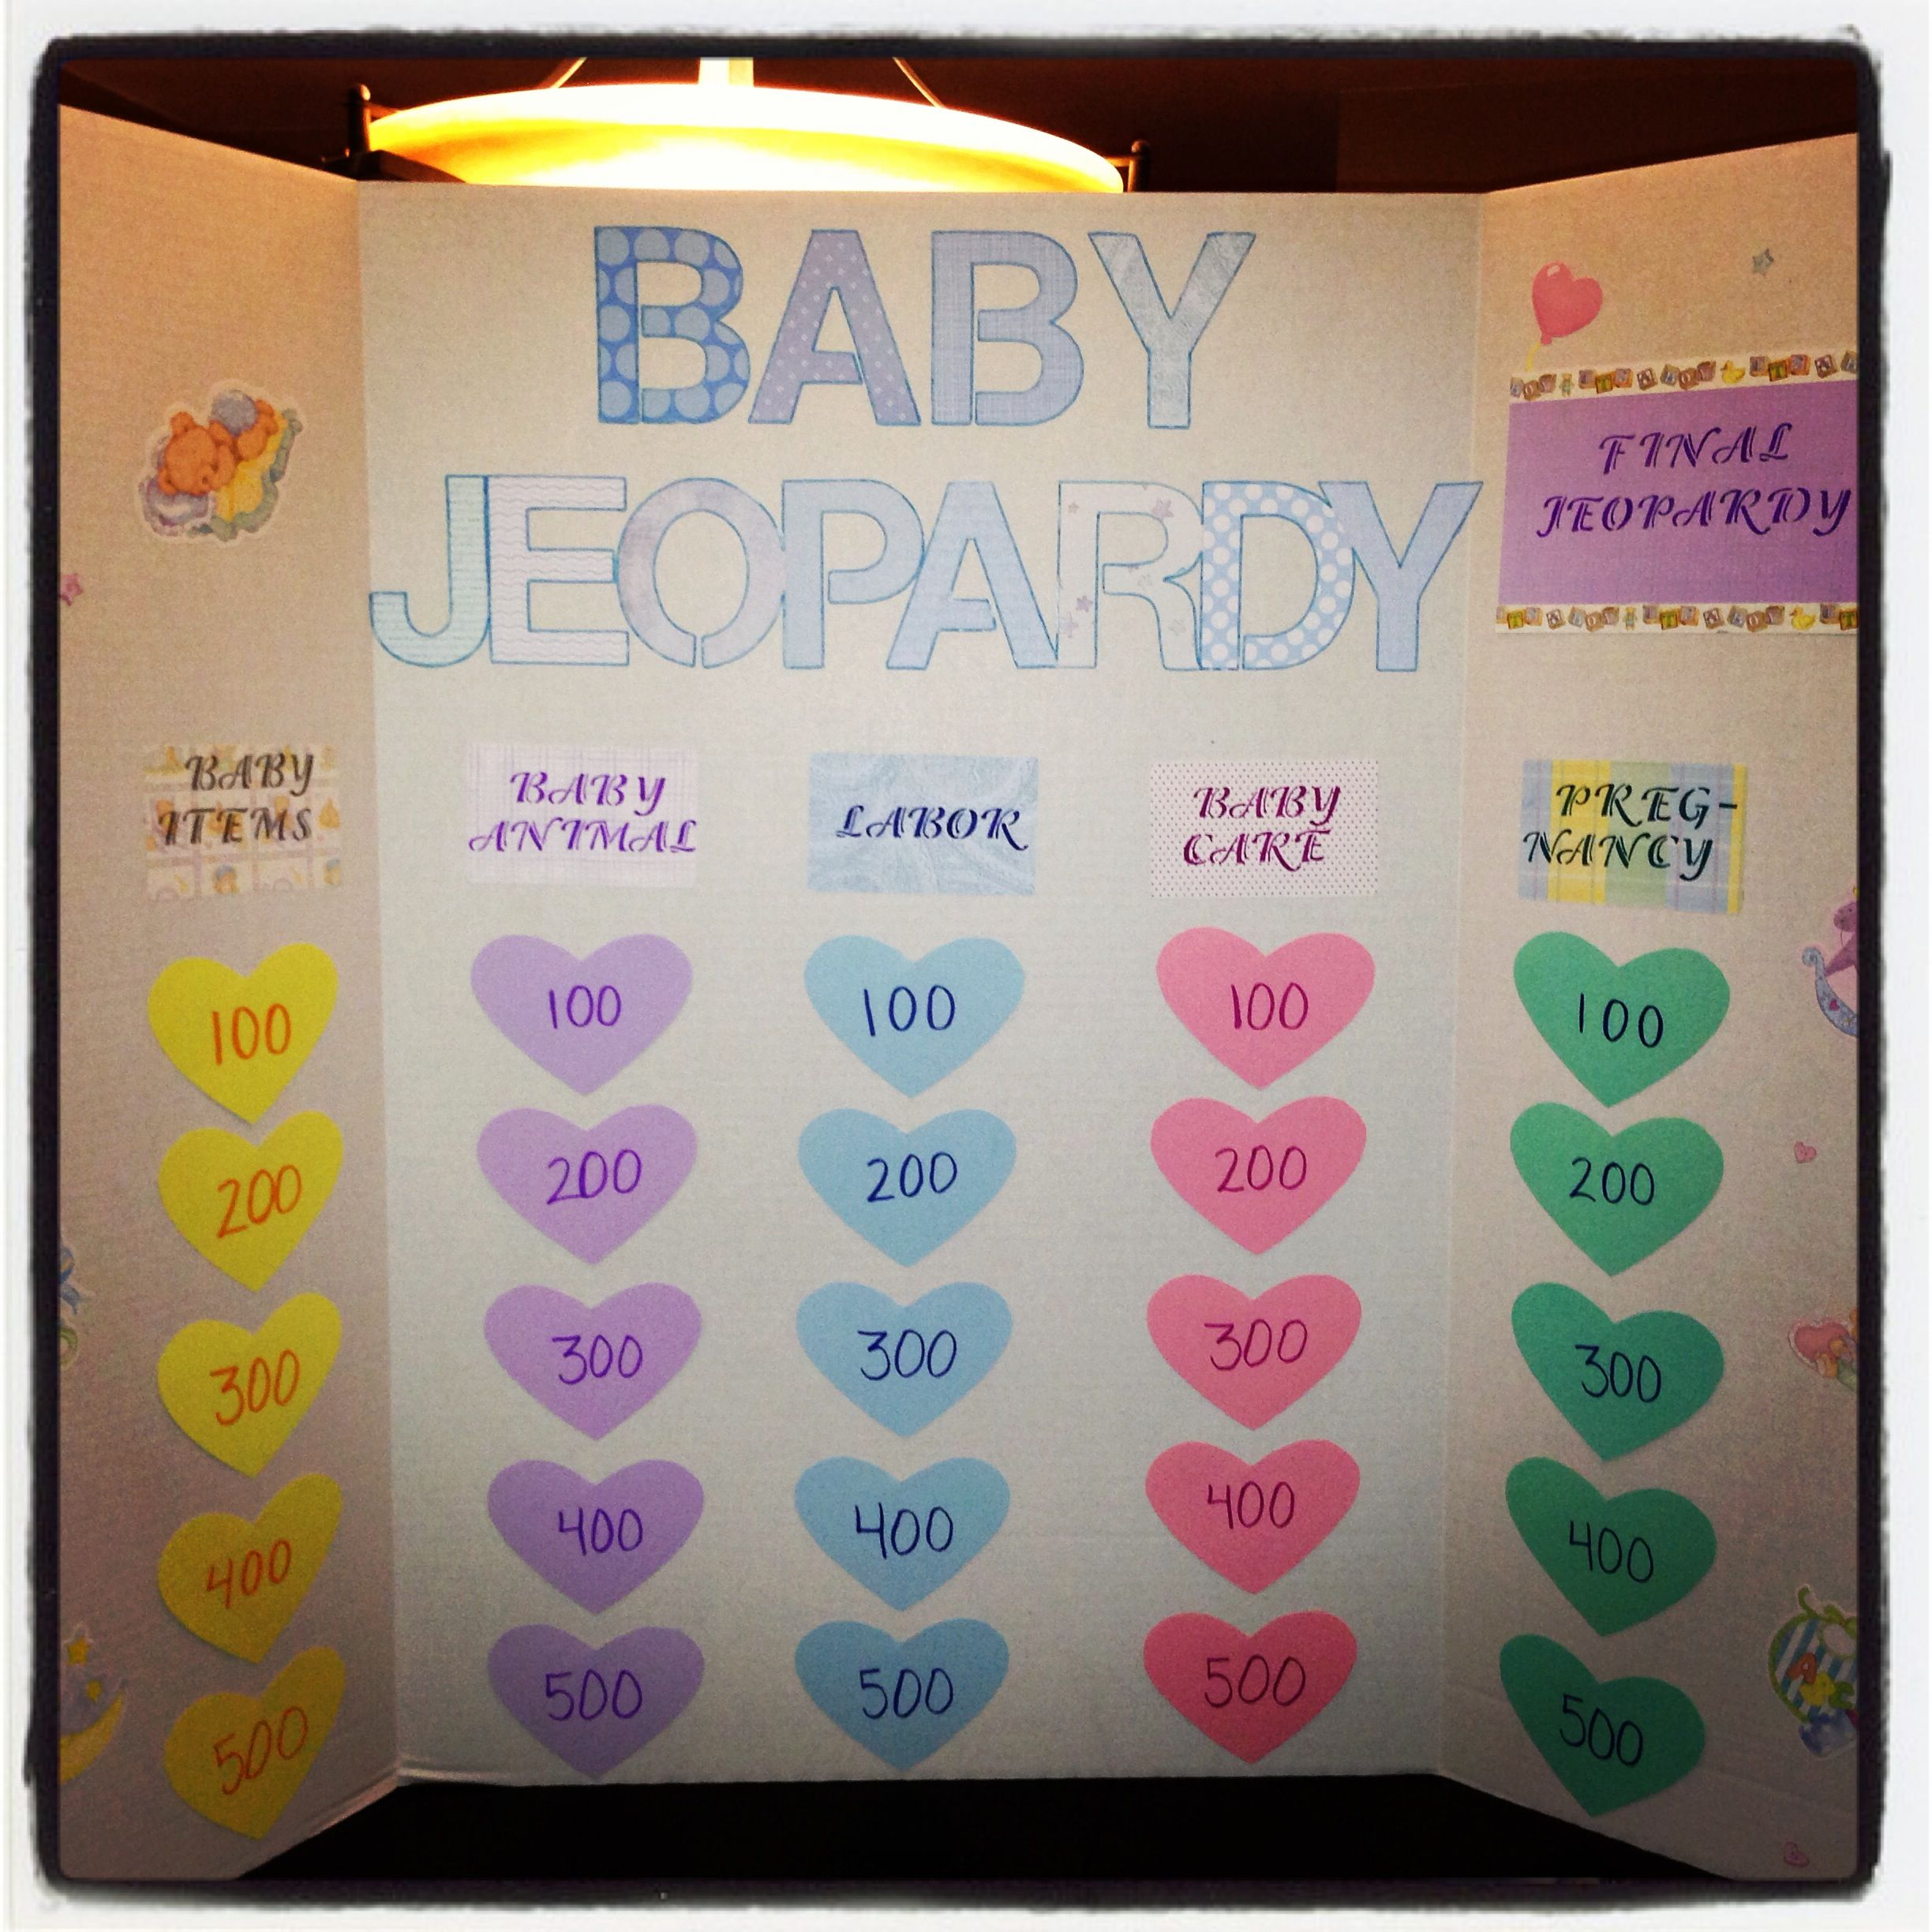 baby jeopardy for baby shower games autumn baby shower pinterest